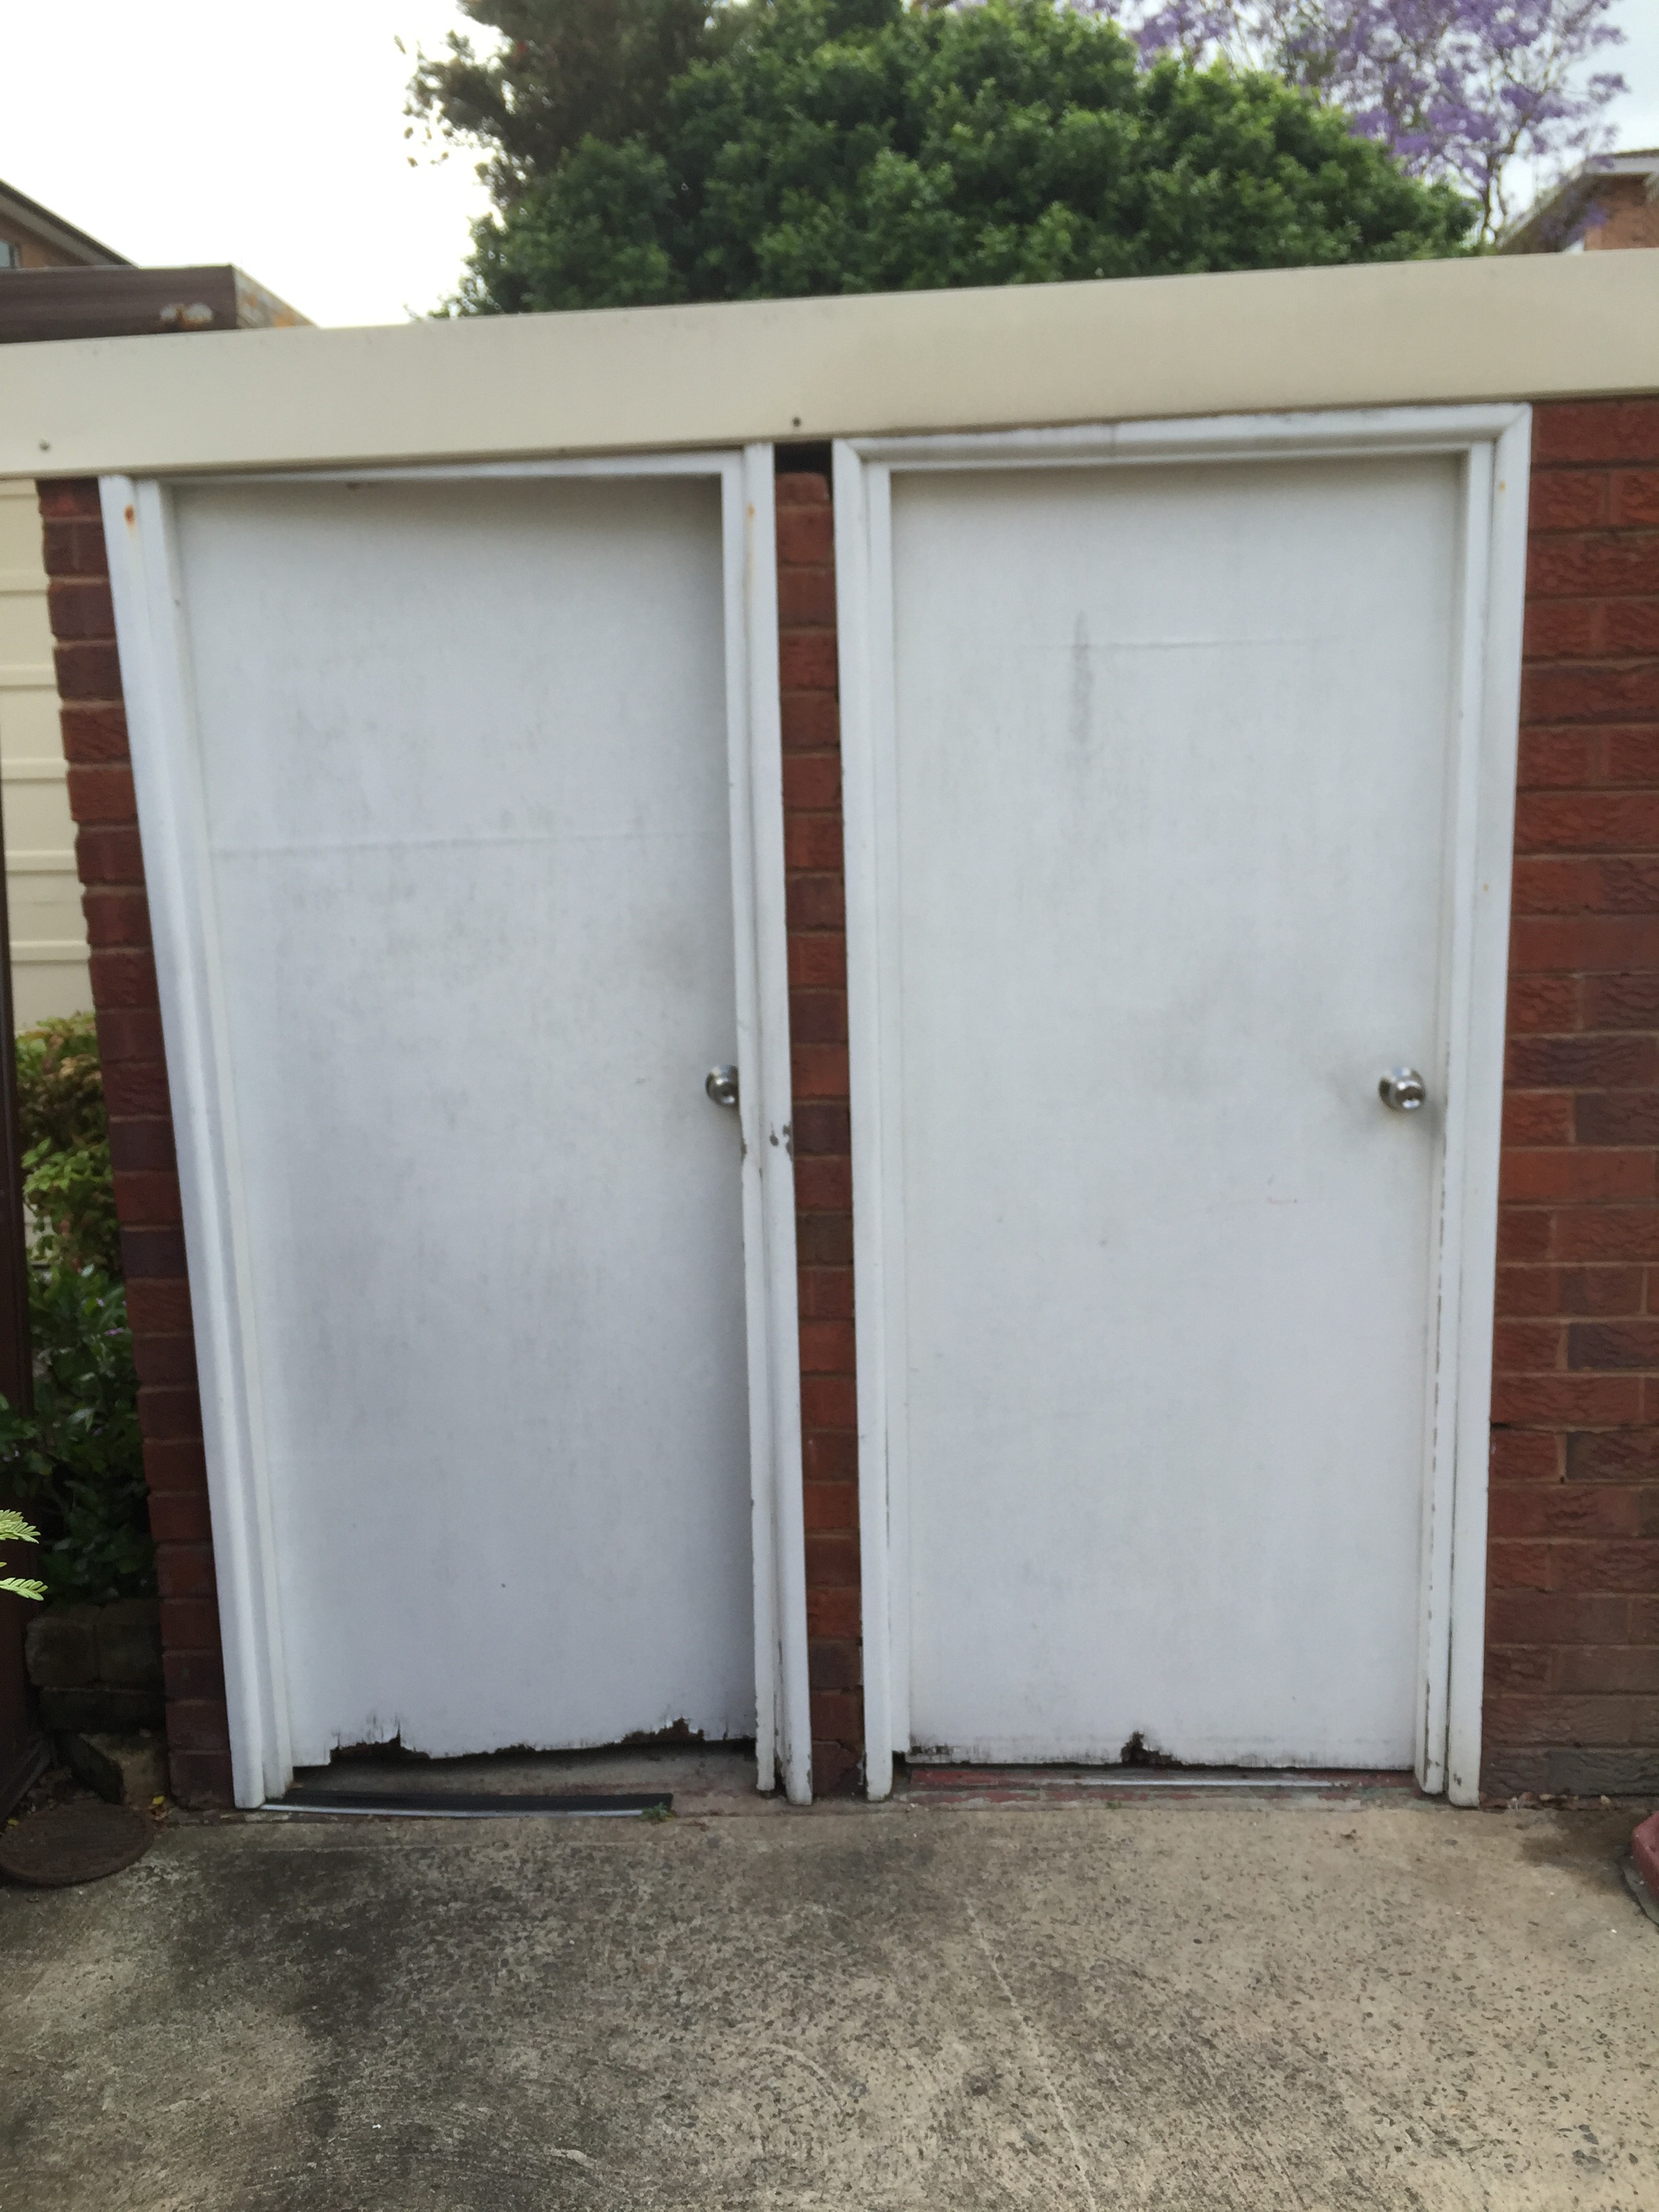 6a - External Laundry Doors Need Replacing